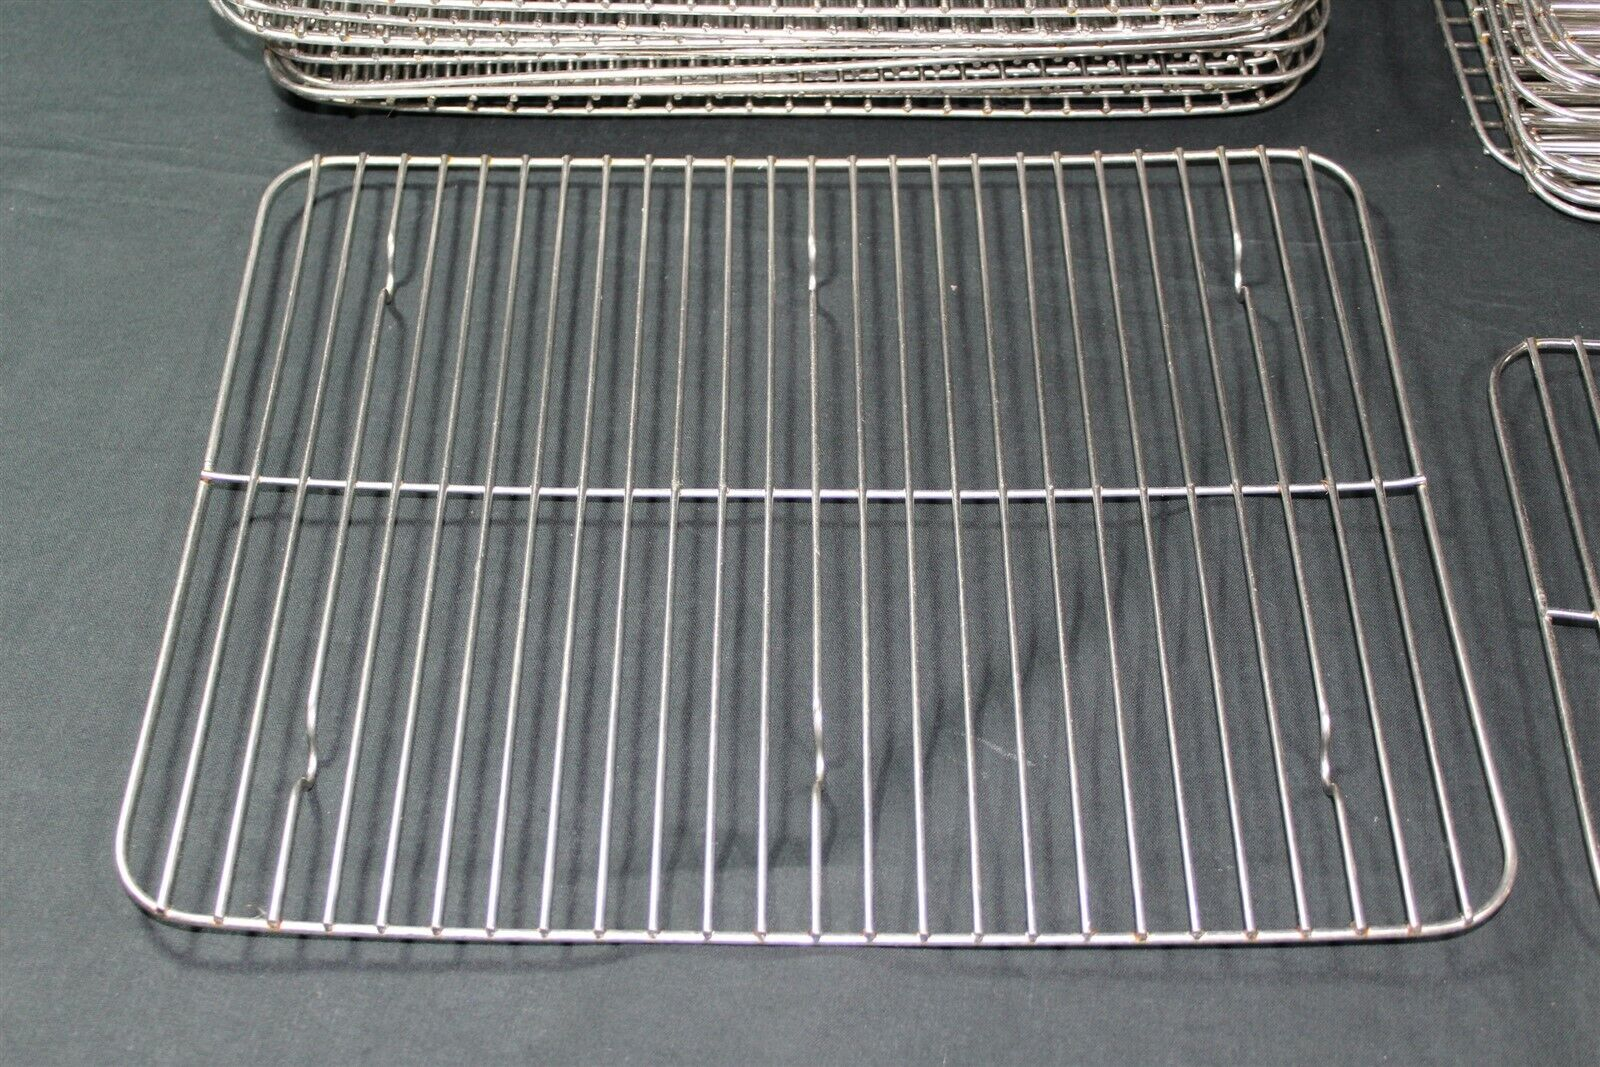 "Cucina 4 X 4 bon chef 60012g stainless steel grill for cucina large food pan - 13 3/4"" x  11"""